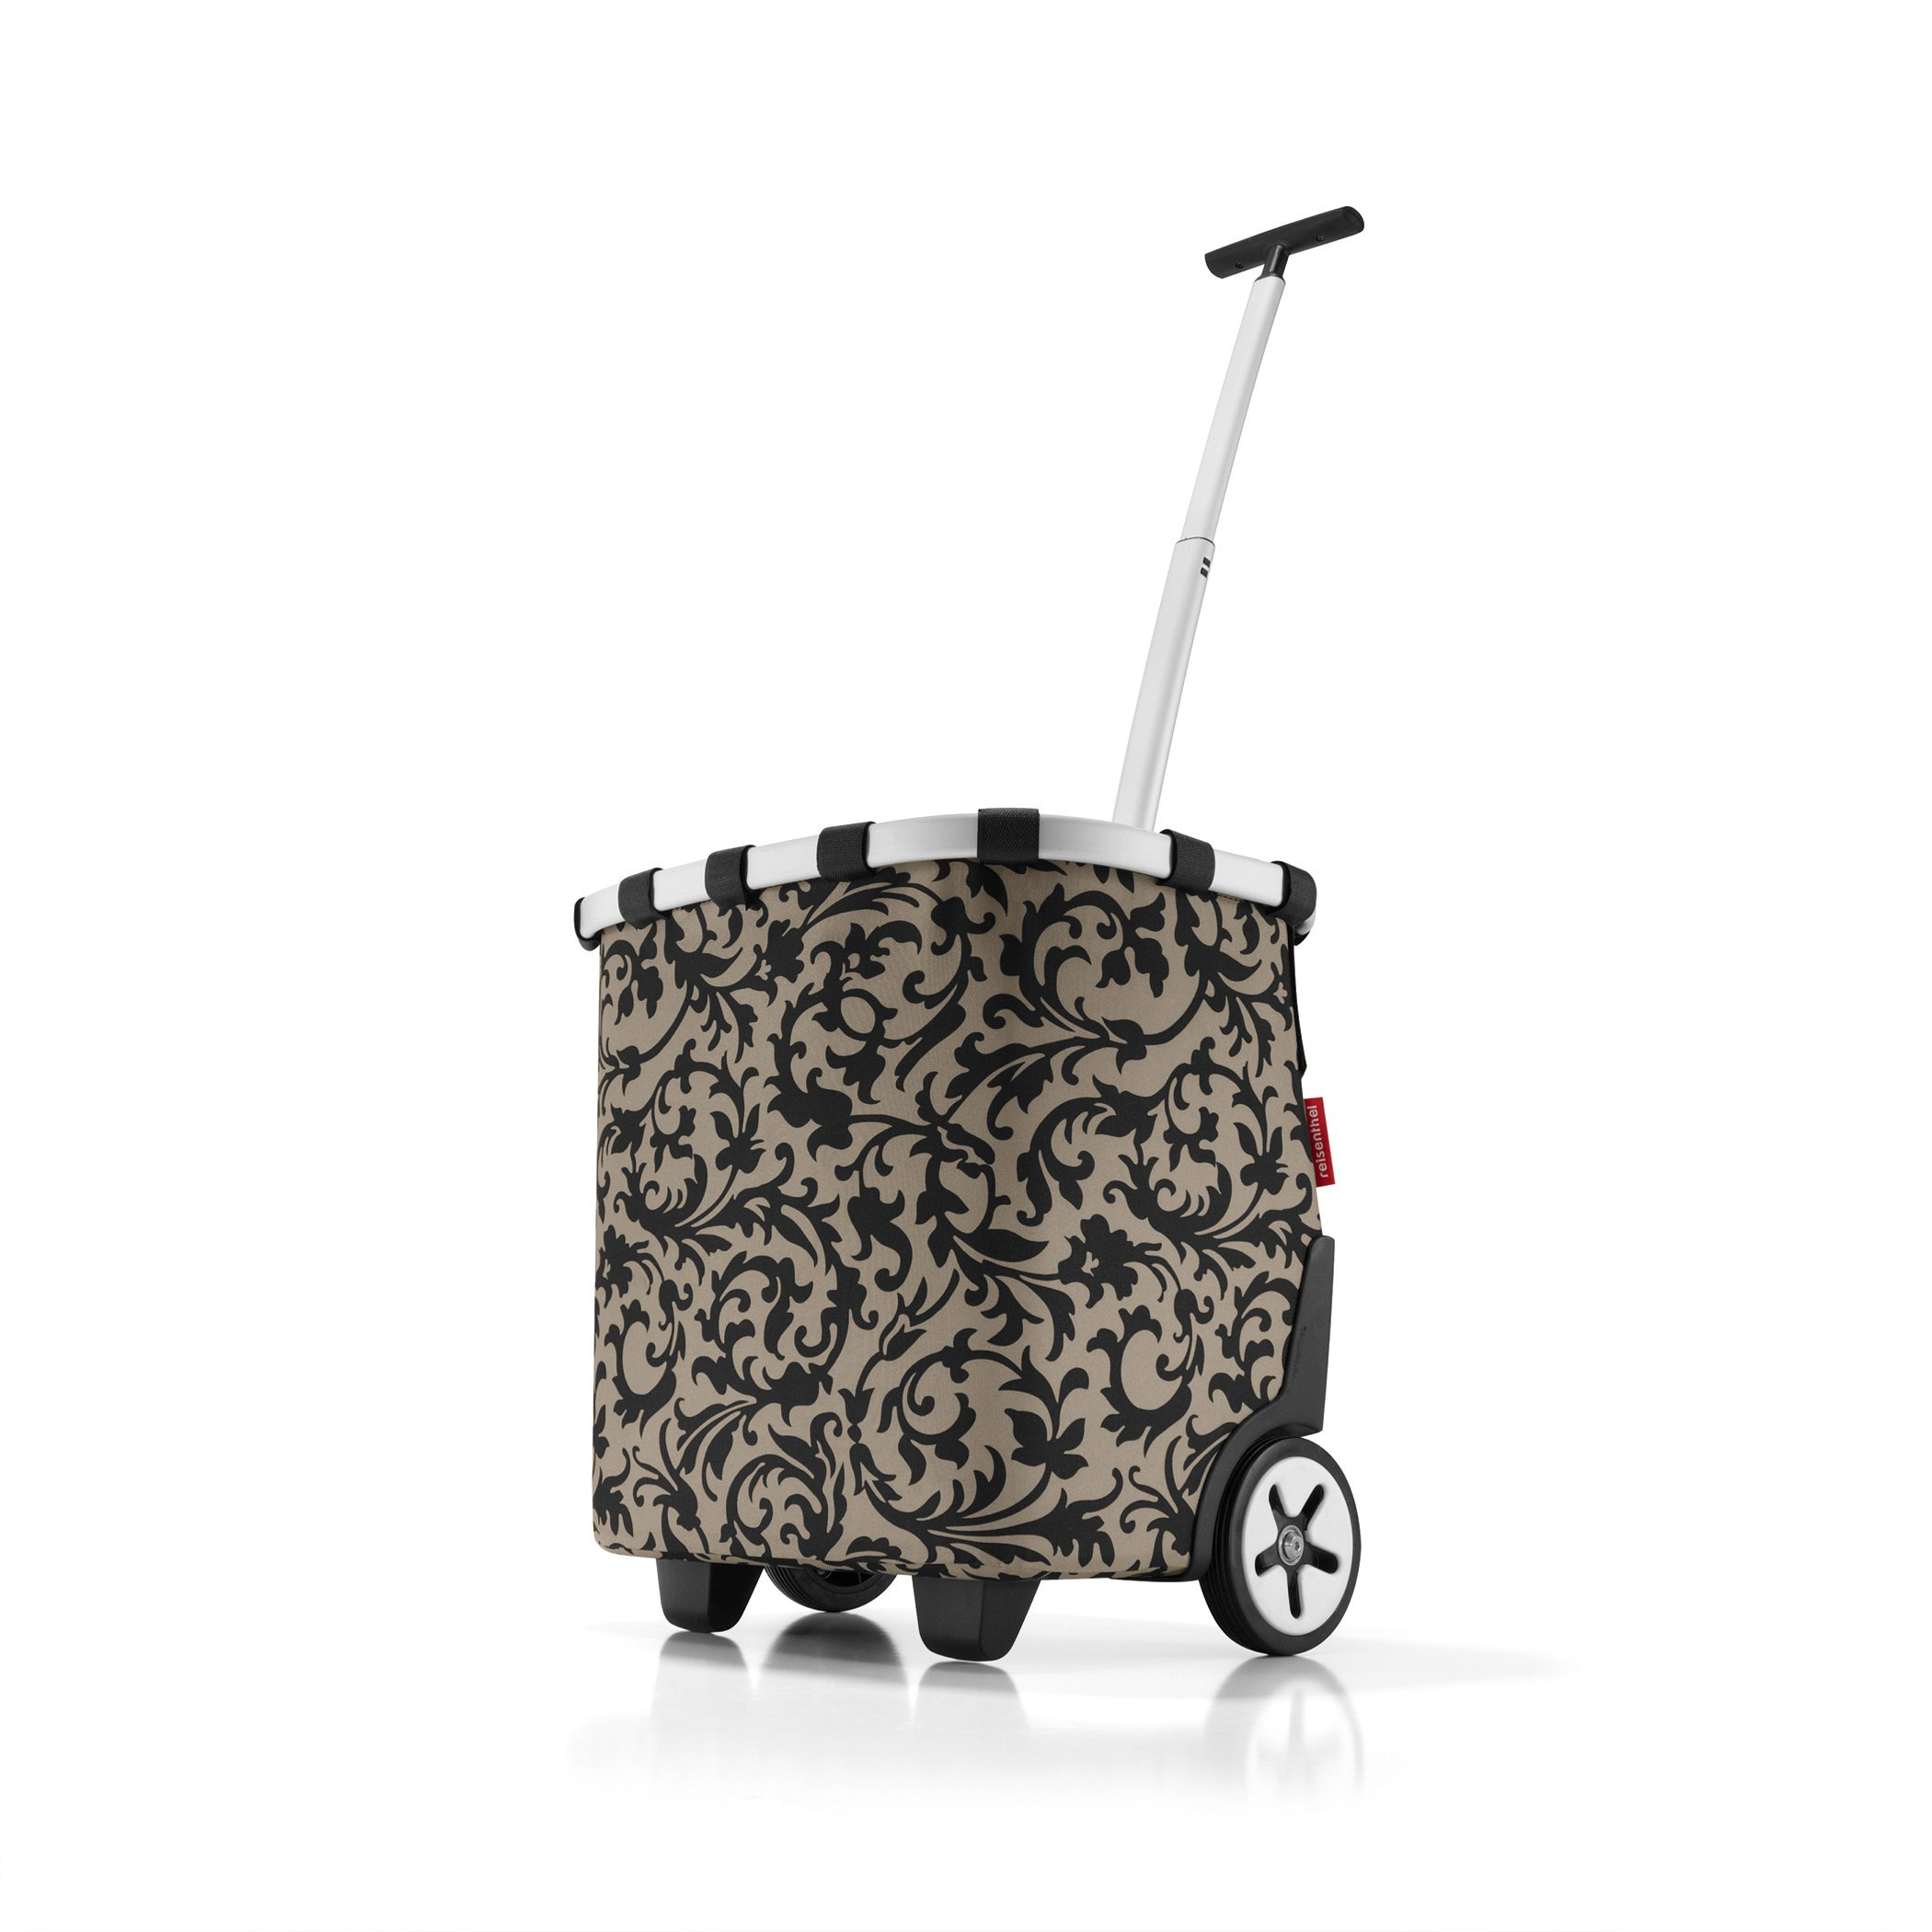 reisenthel Carrycruiser Shopping Trolley, Baroque Taupe by reisenthel (Image #1)